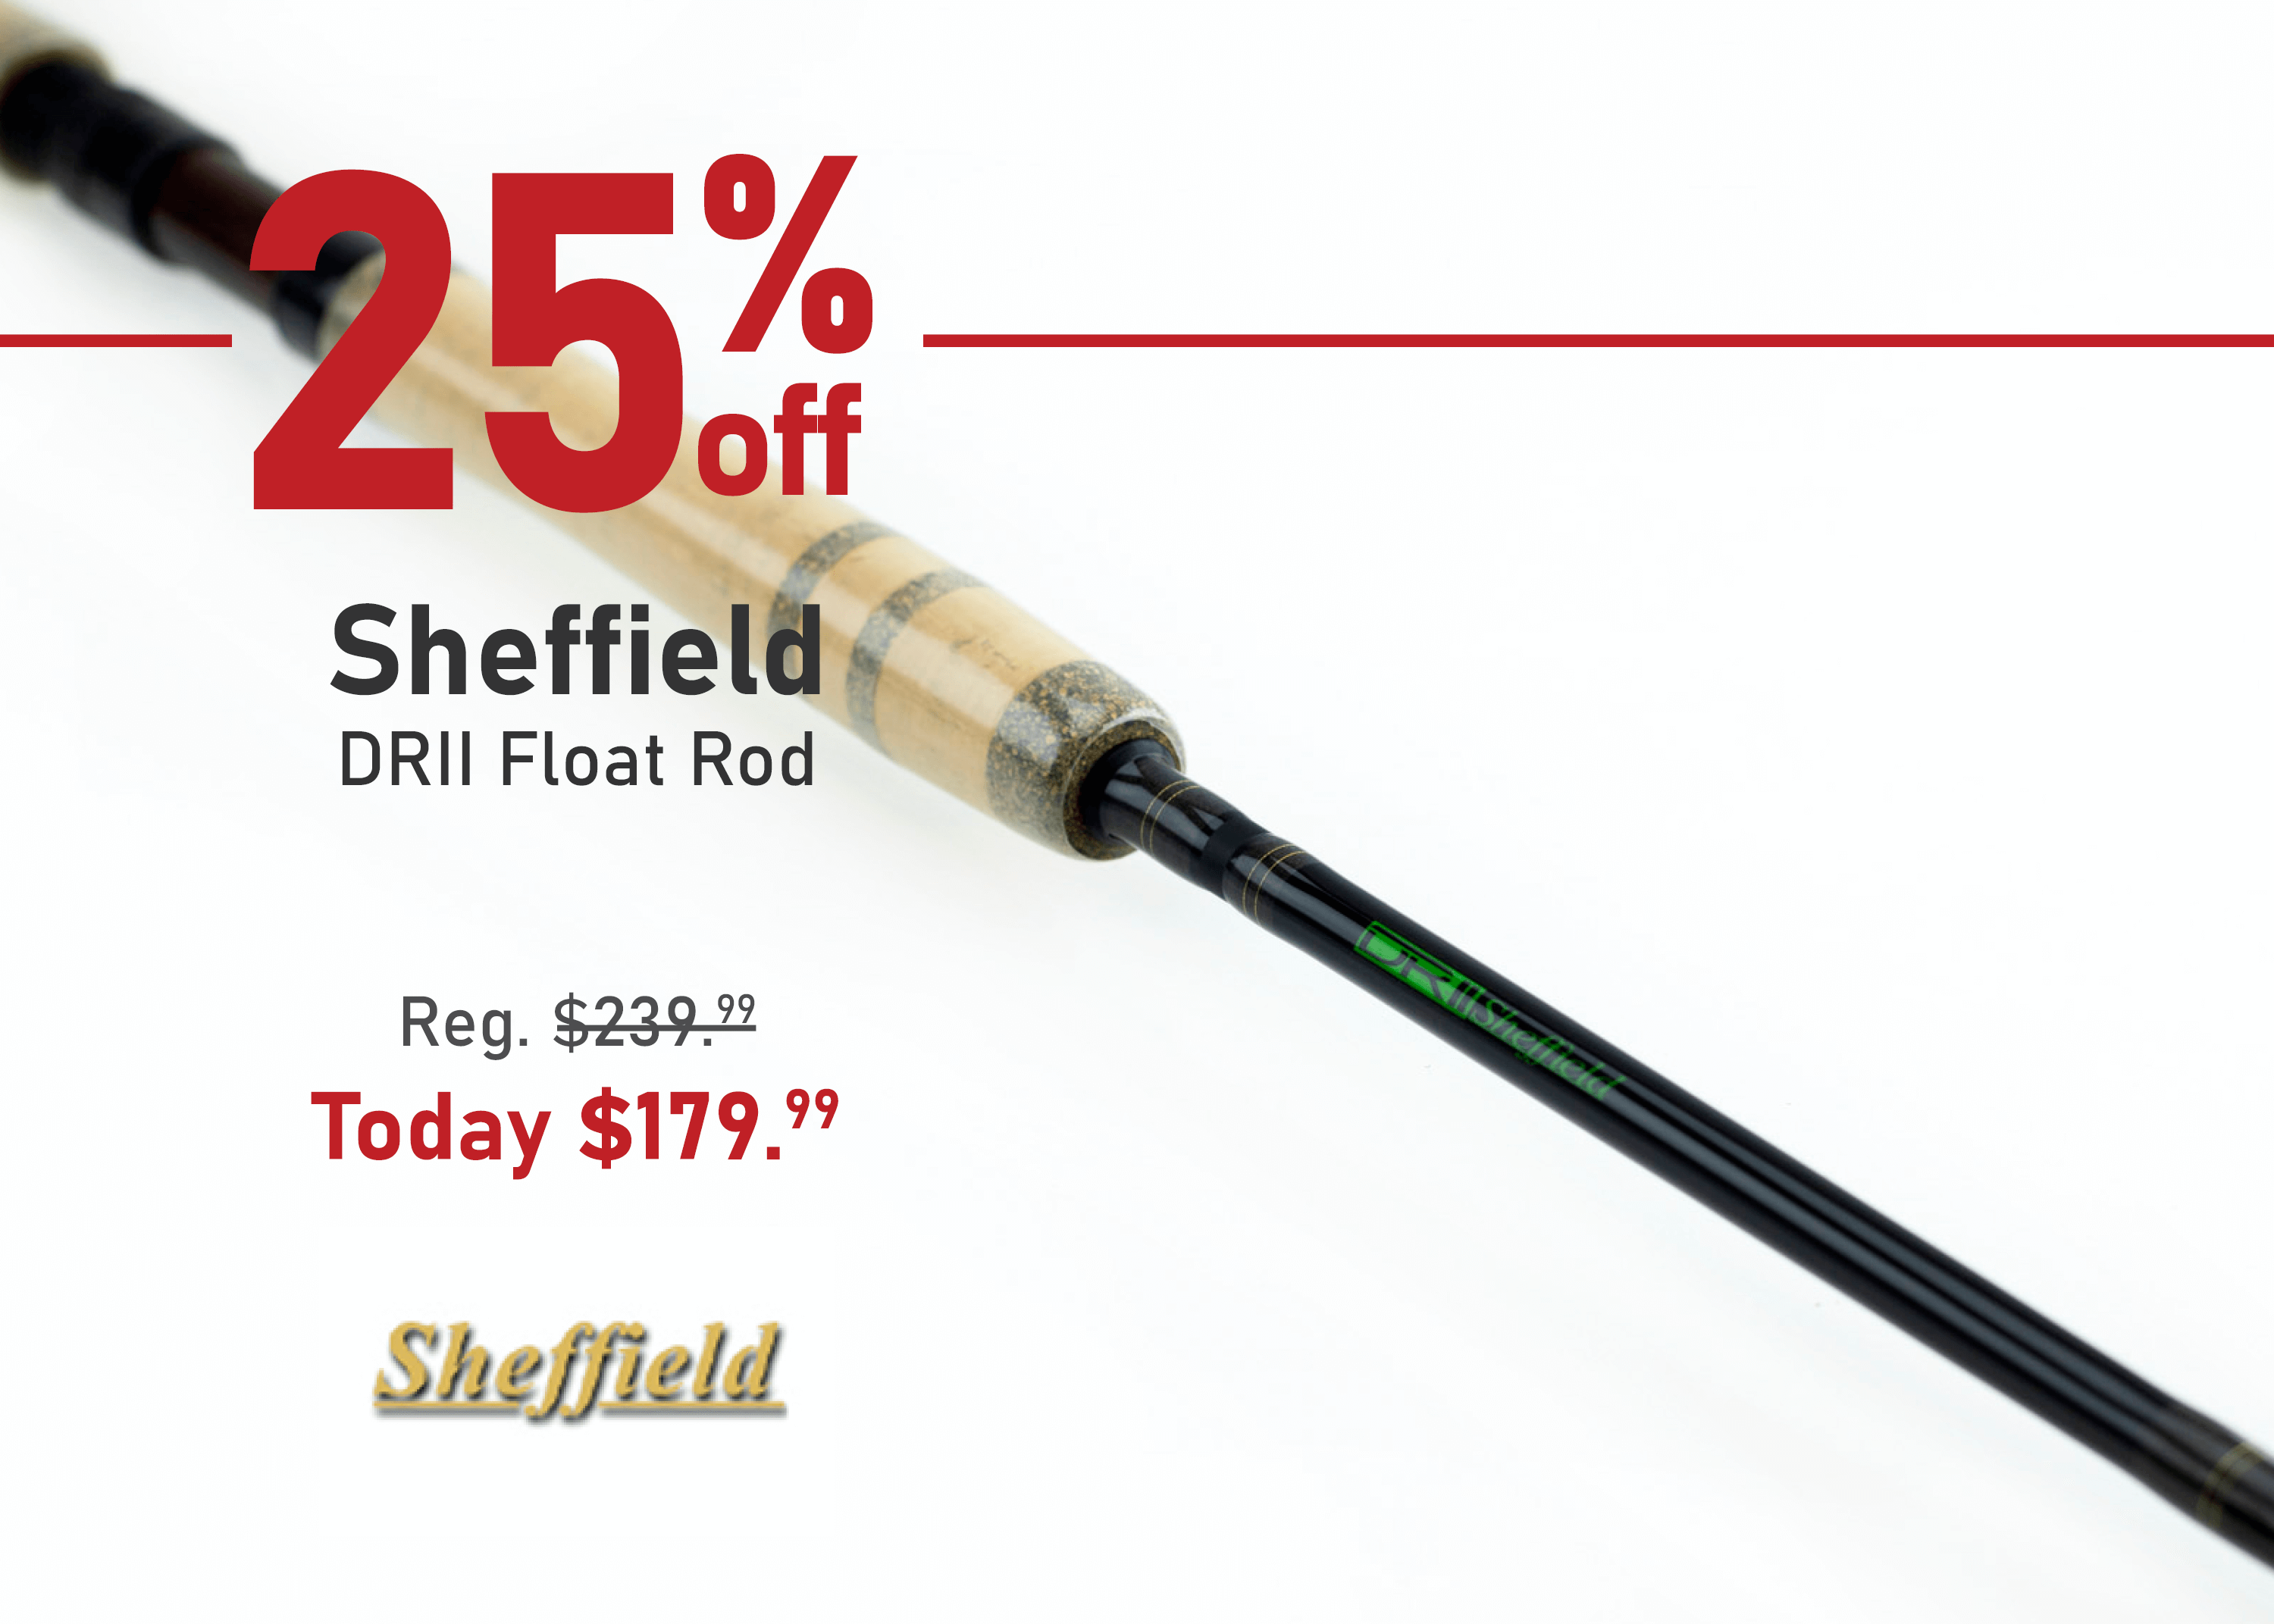 Save 25% on the Sheffield DRII Float Rod